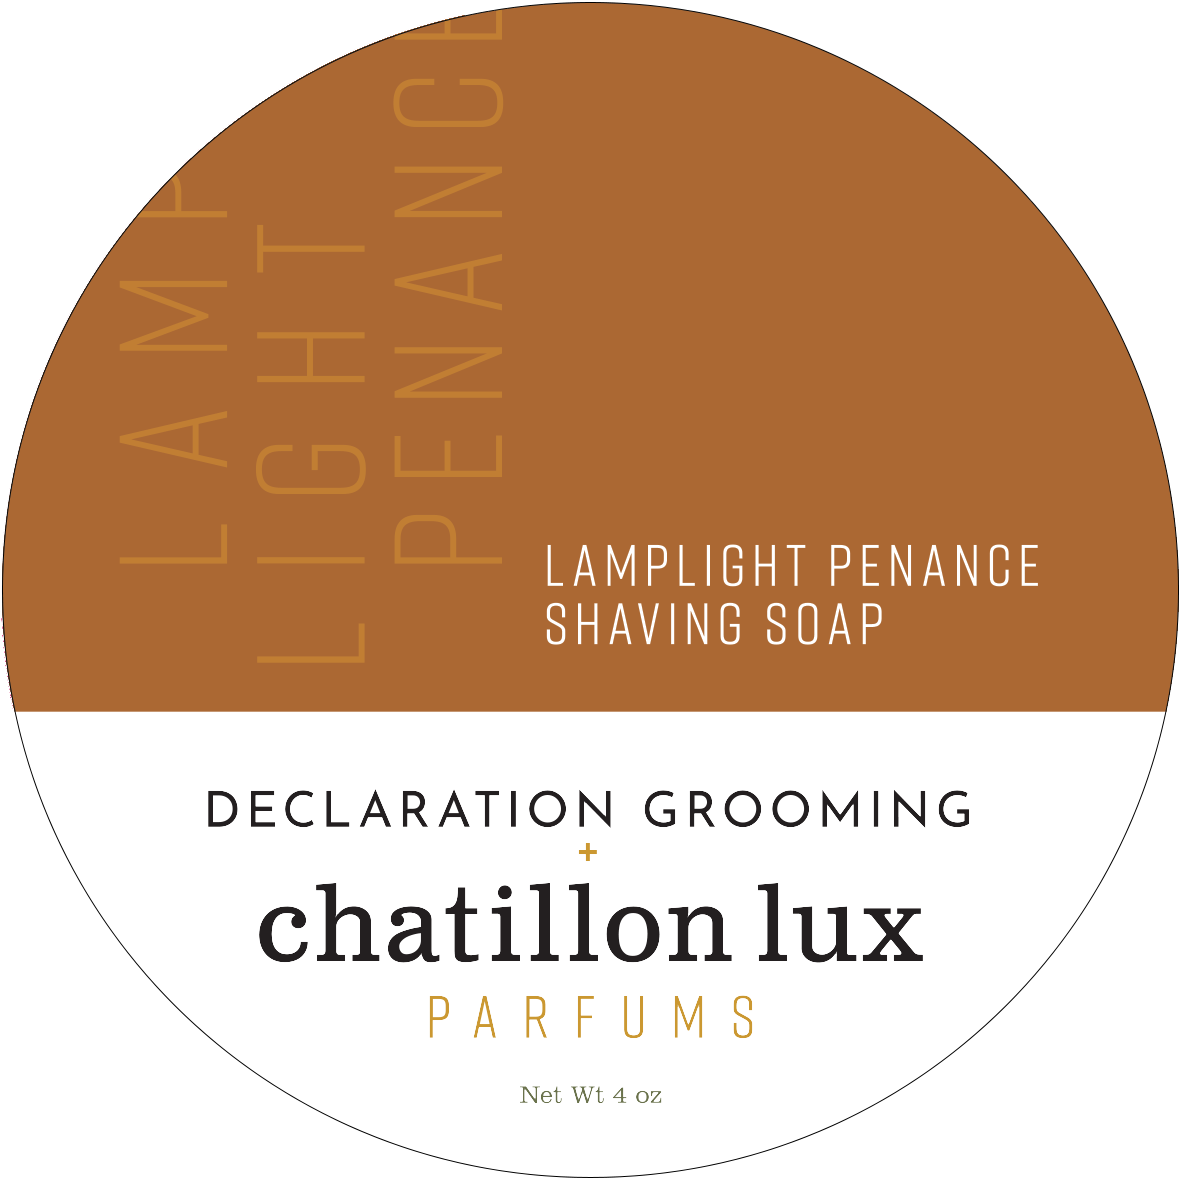 Declaration Grooming - Chatillon Lux/Declaration Grooming - Lamplight Penance - Soap image